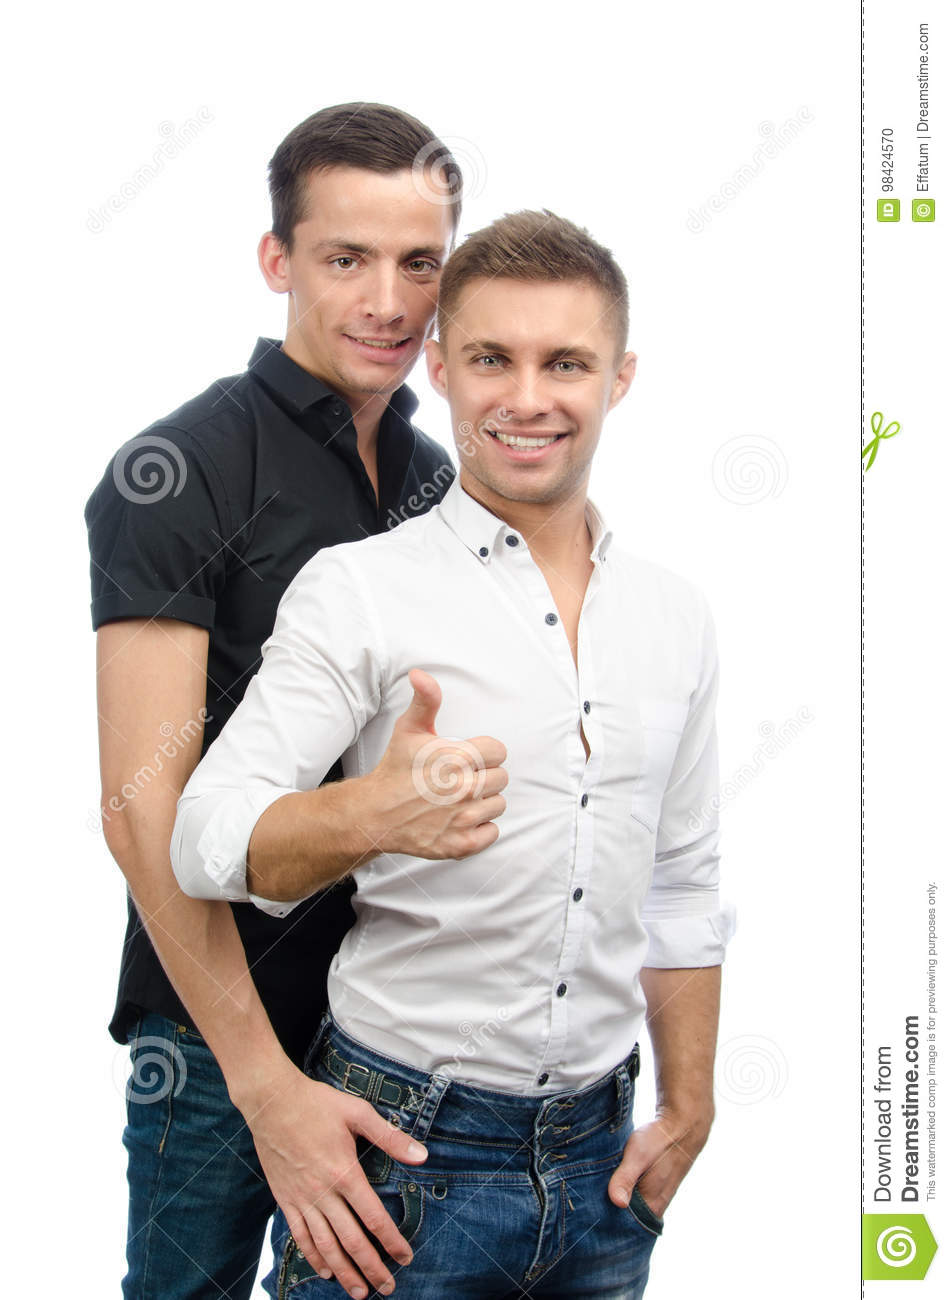 Gay Sexy Download inside okay. two guys. love and relationships. white background. stock